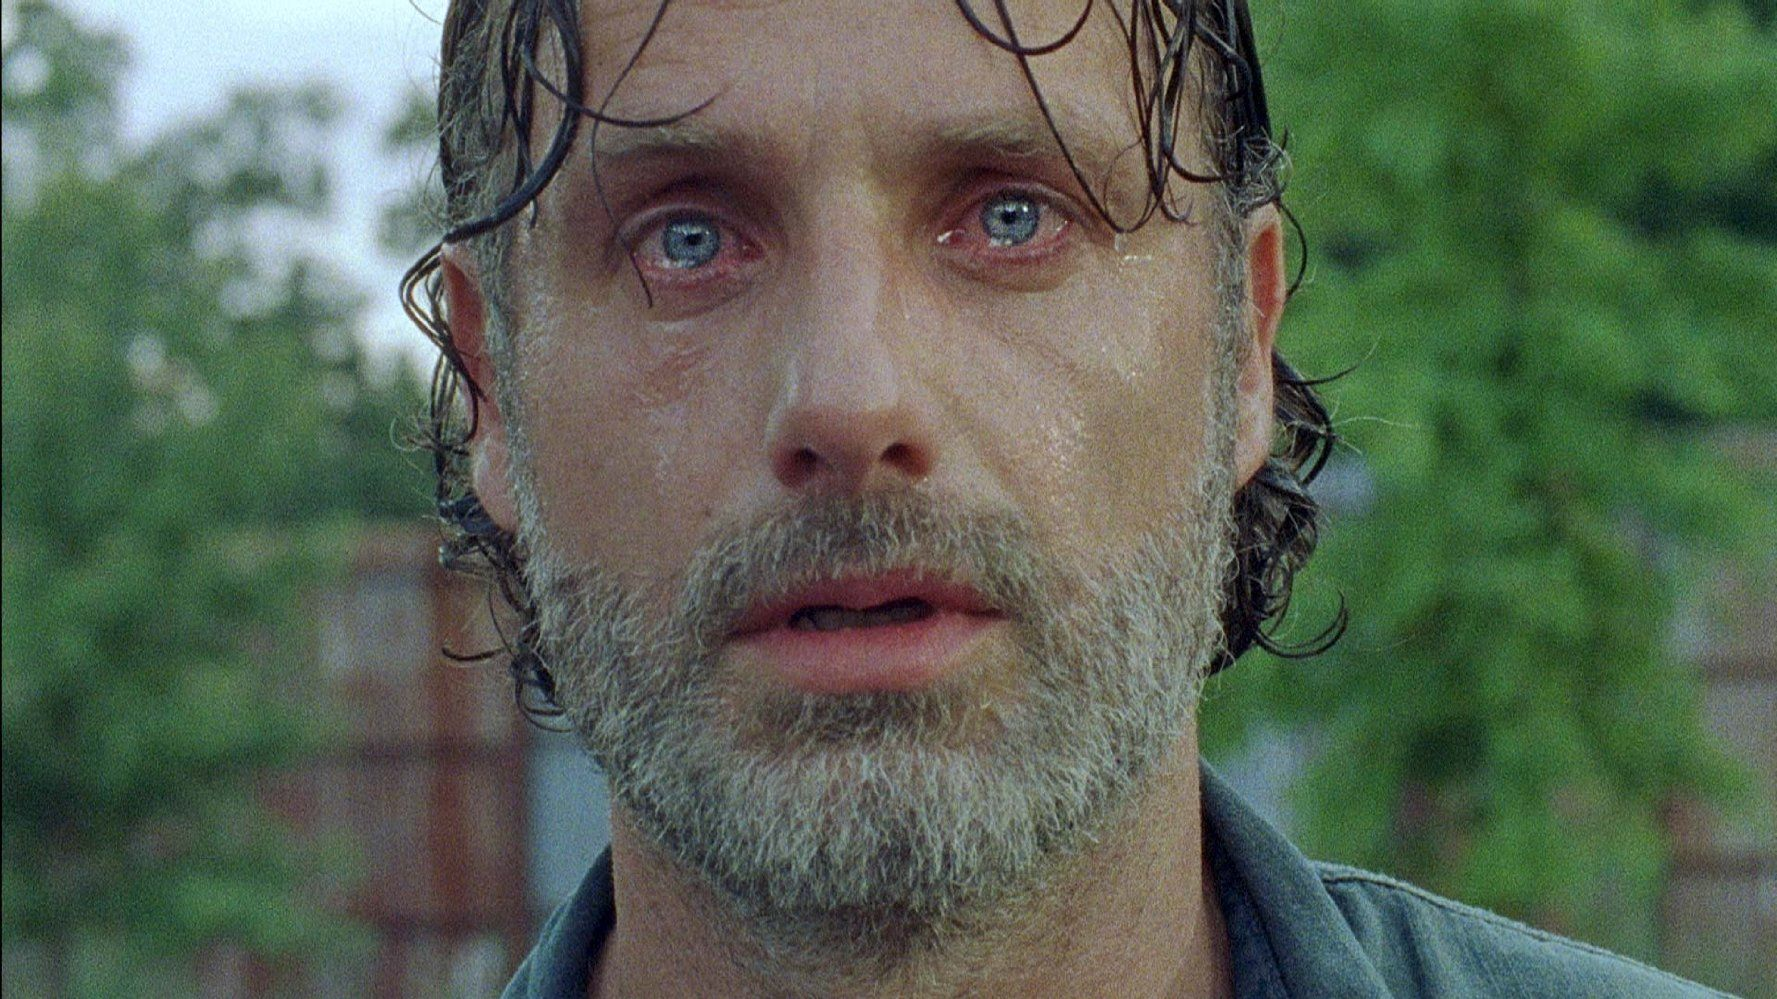 Rick, looking sweaty and disheveled, looks directly into the camera